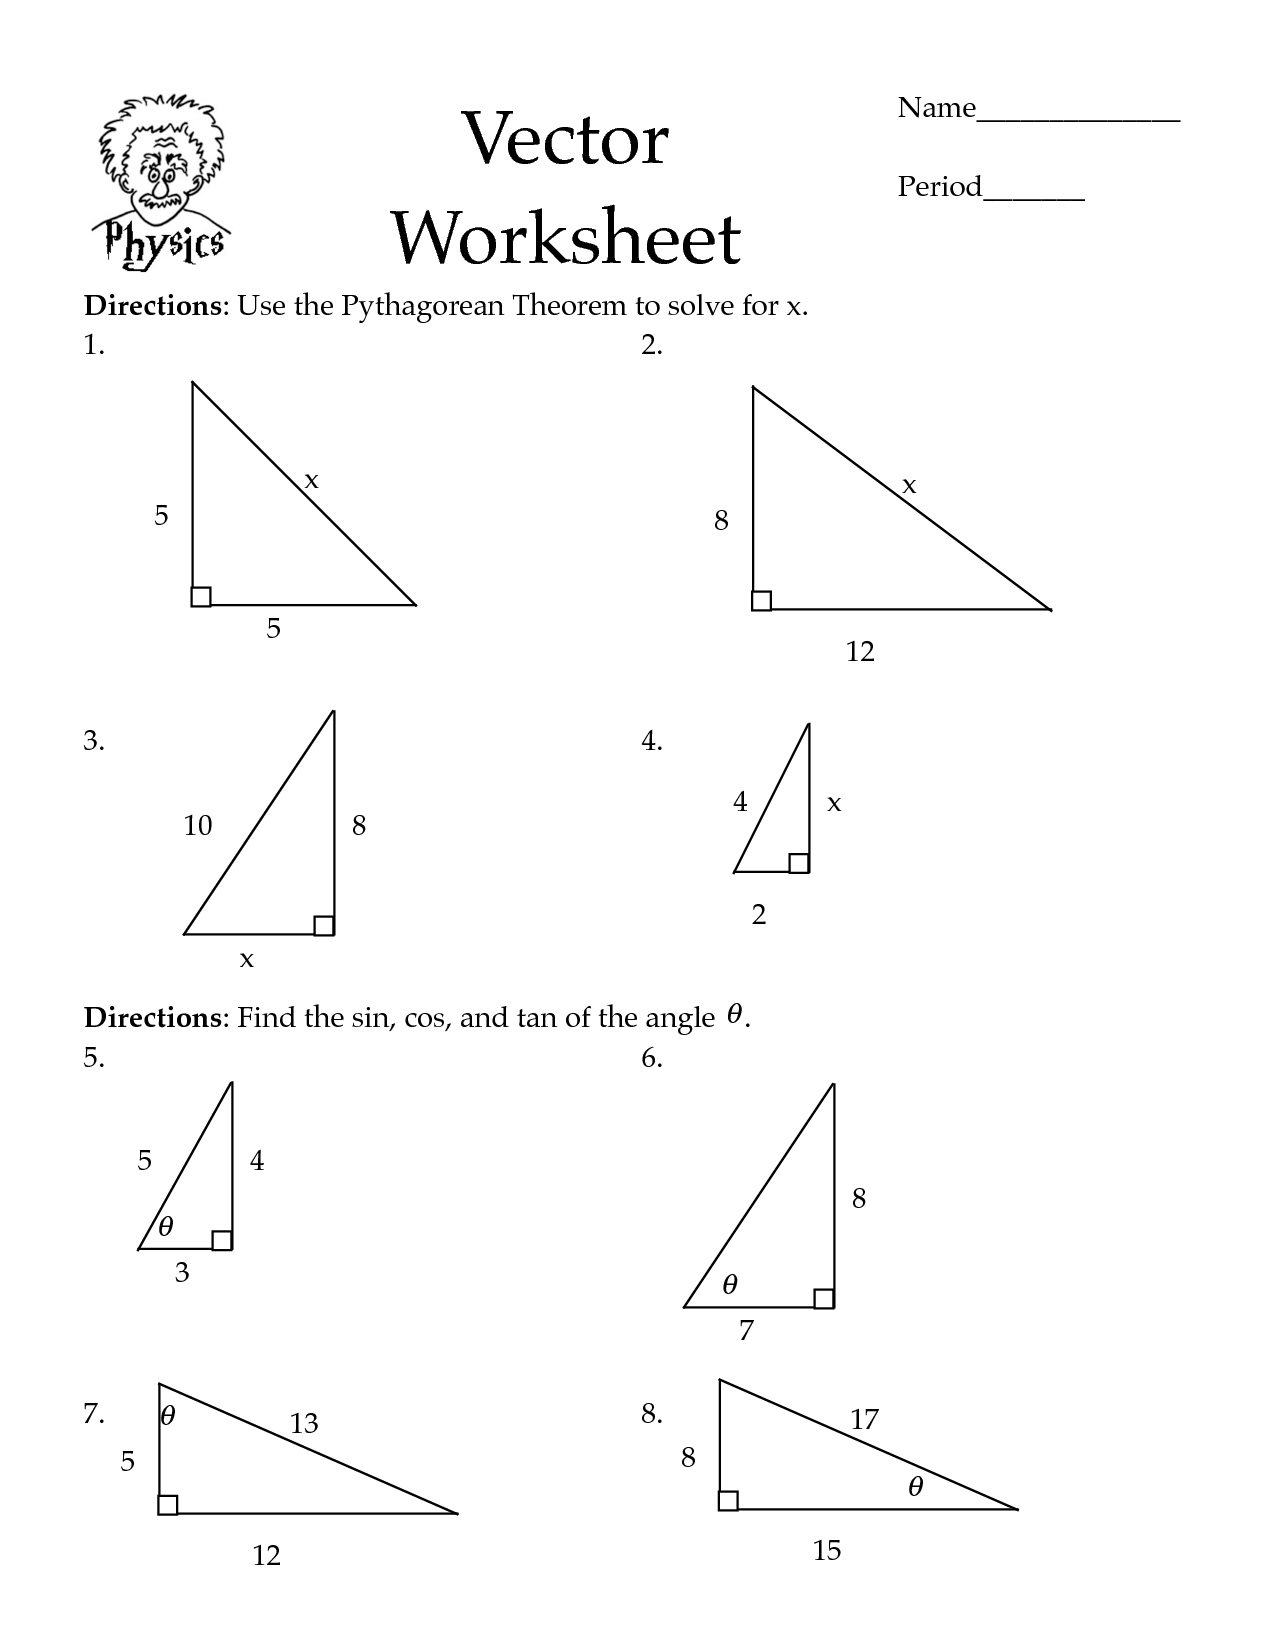 Confortable Angles Directions Worksheets On Pythagorean